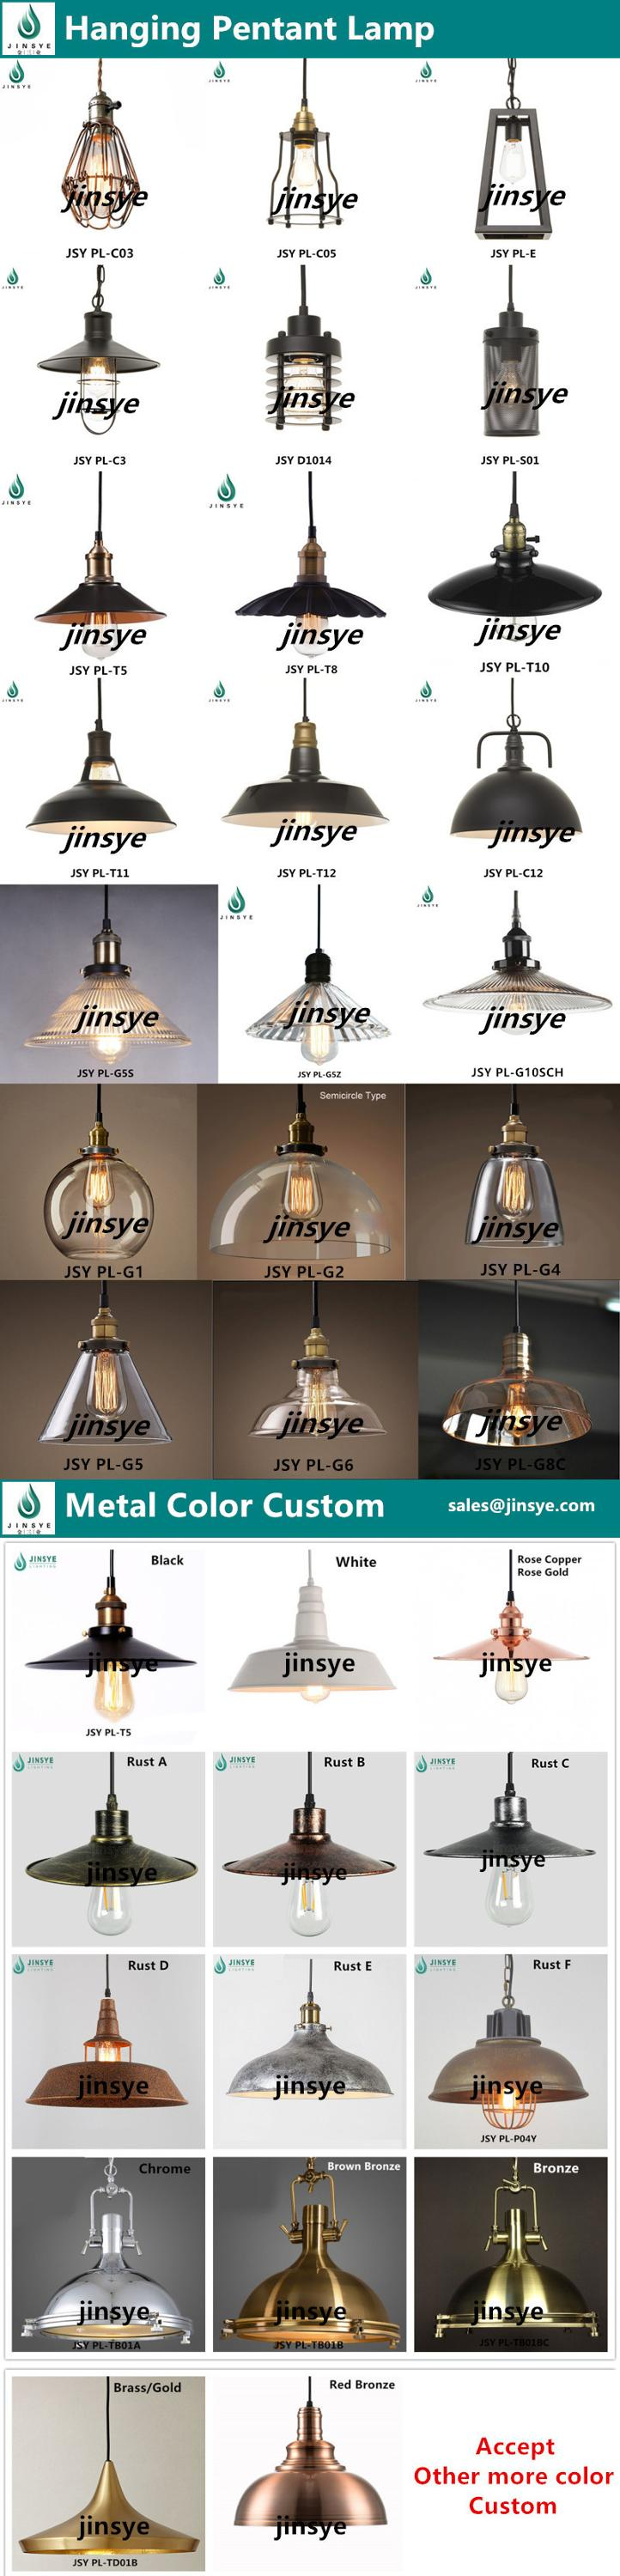 Image of: Trapezoid Rectangle Large Black Cage Metal Pendant Light Vintage Industrial Lamp View Vintage Industrial Lamp Jinsye Product Details From Jinsanye Import Export Fuzhou Co Ltd On Alibaba Com